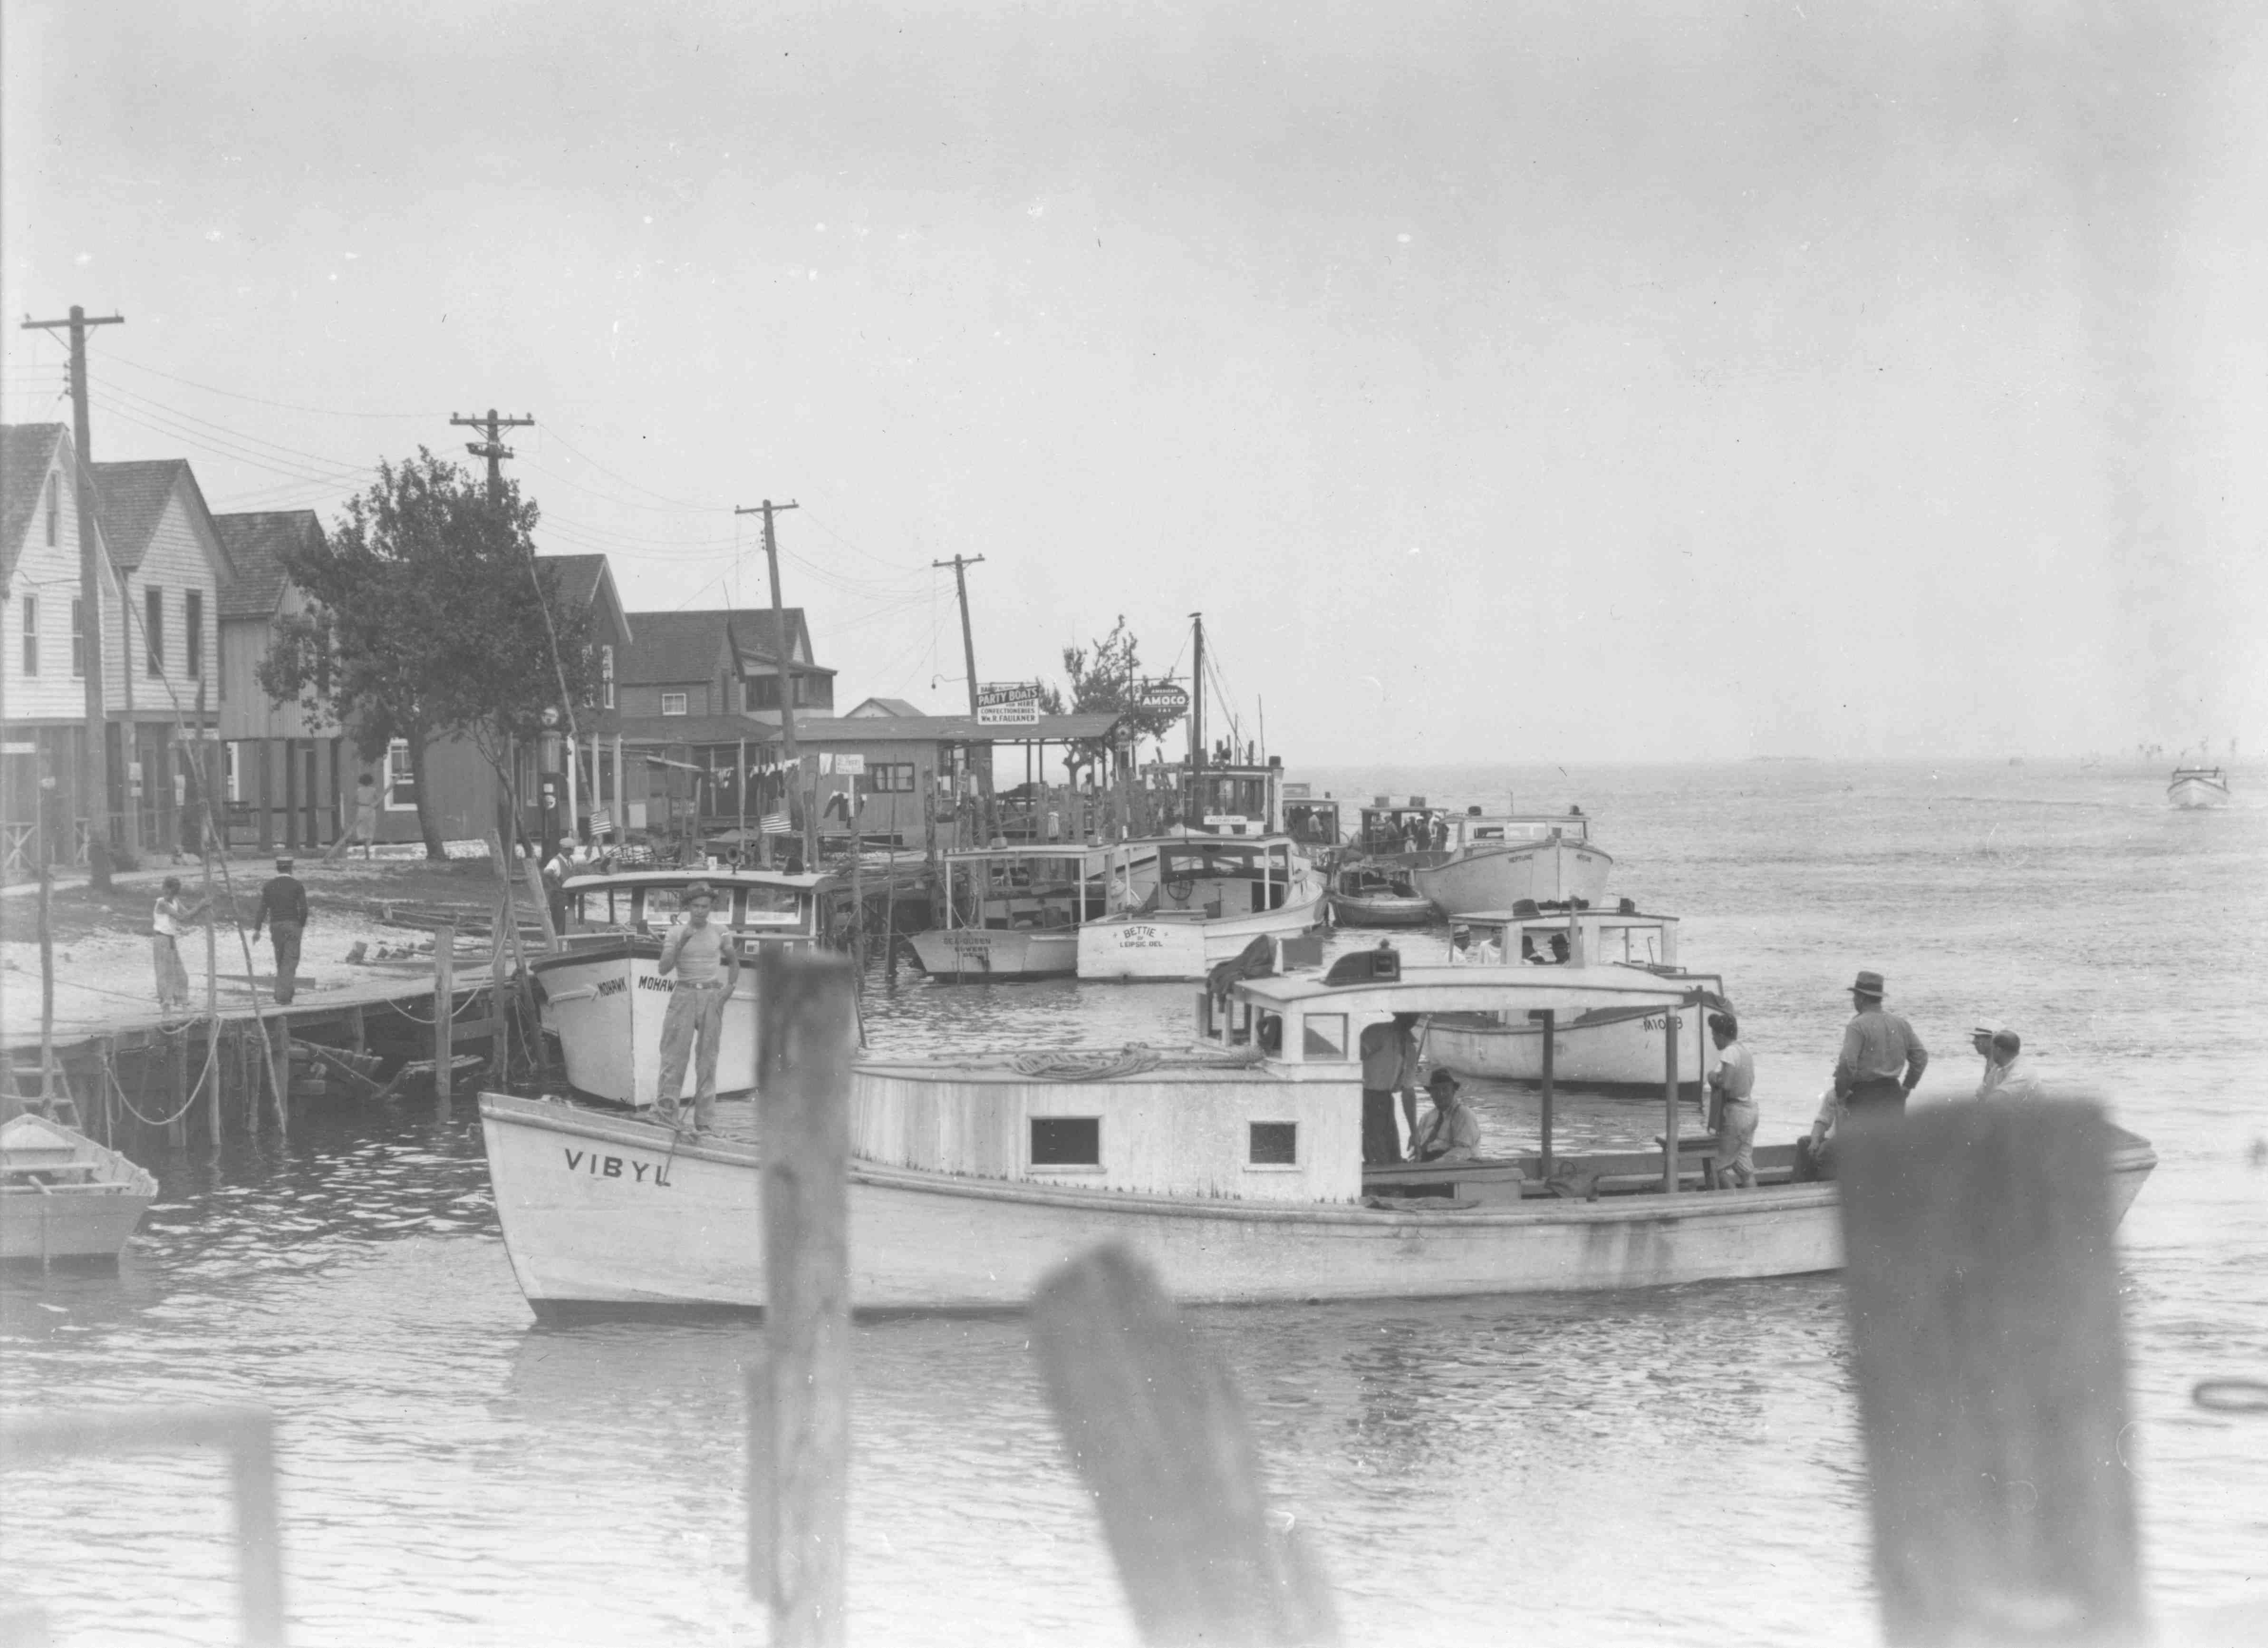 1935 Fishing Boats At Bowers Beach Delaware From The Board Of Ag Collection 1380 006 1963 Www Archives Gov